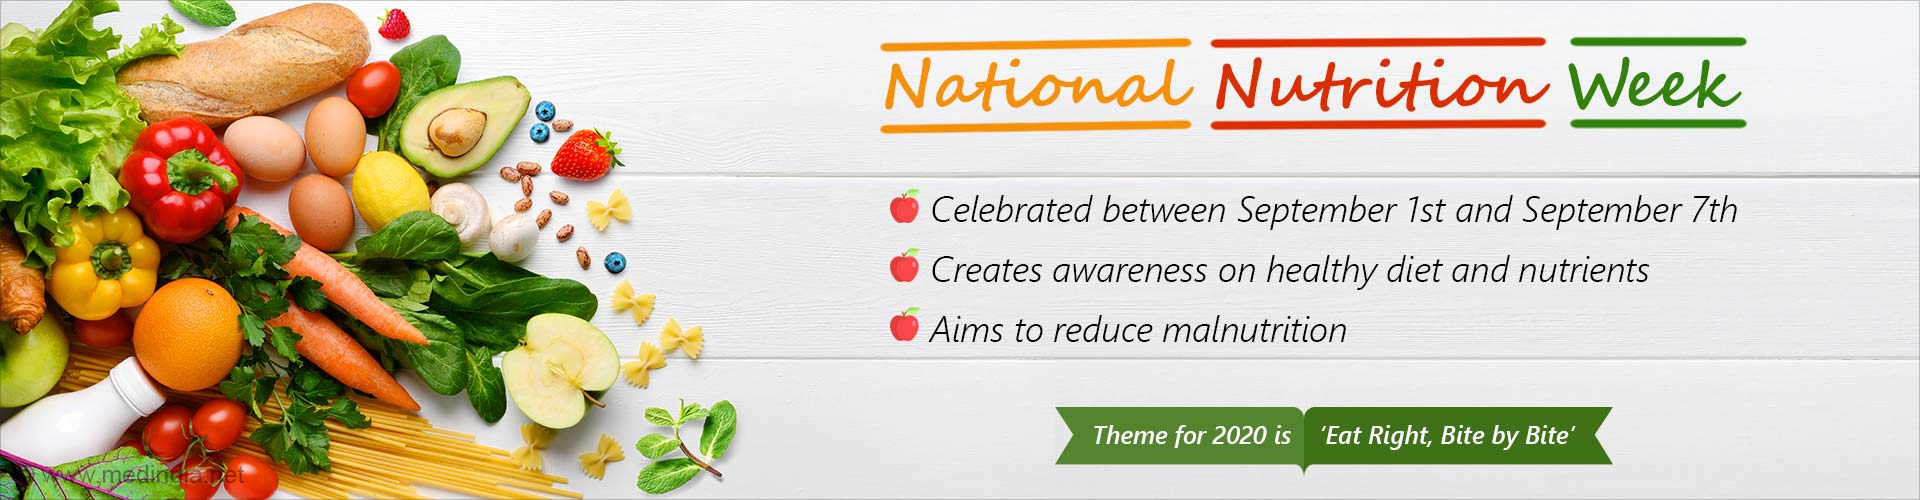 National Nutrition Week – 'Eat Right, Bite by Bite'